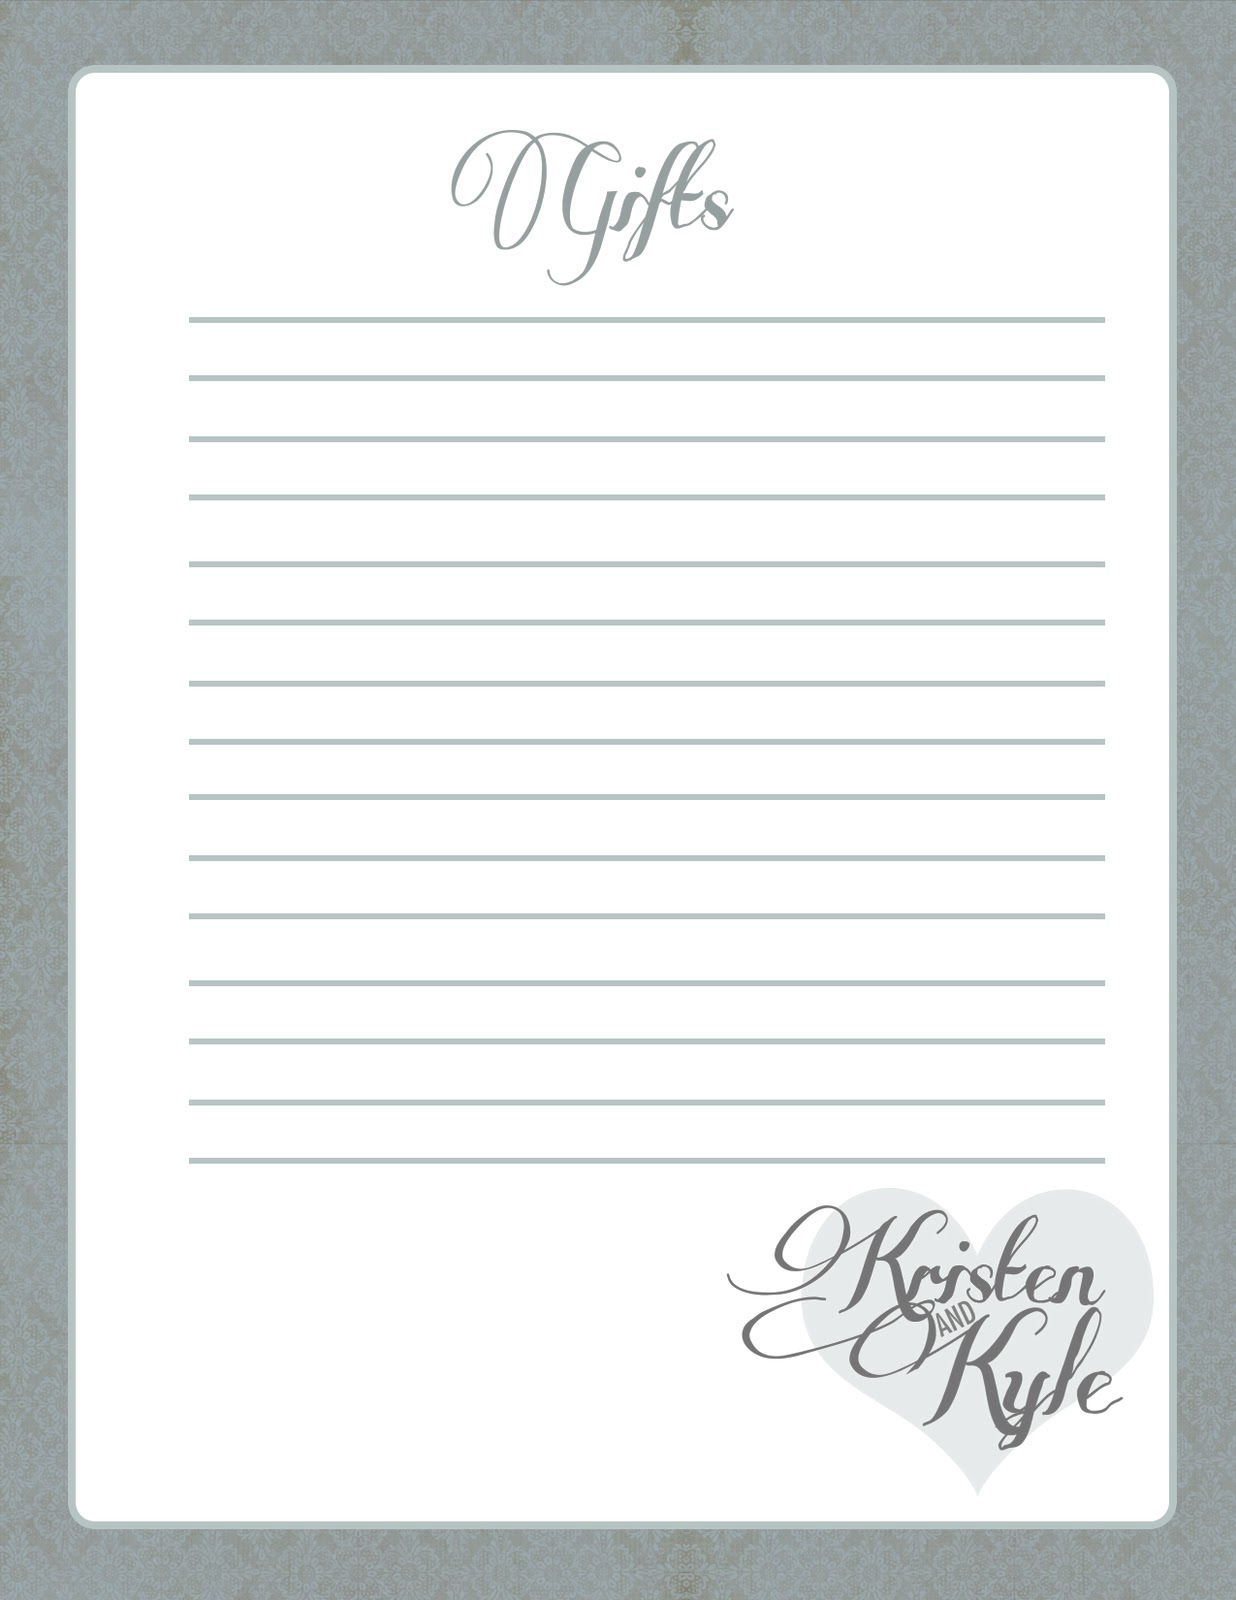 Birthday list template free business form templates baby shower guest list template gift2blist baby shower guest list template birthday list template free birthday list template free pronofoot35fo Images